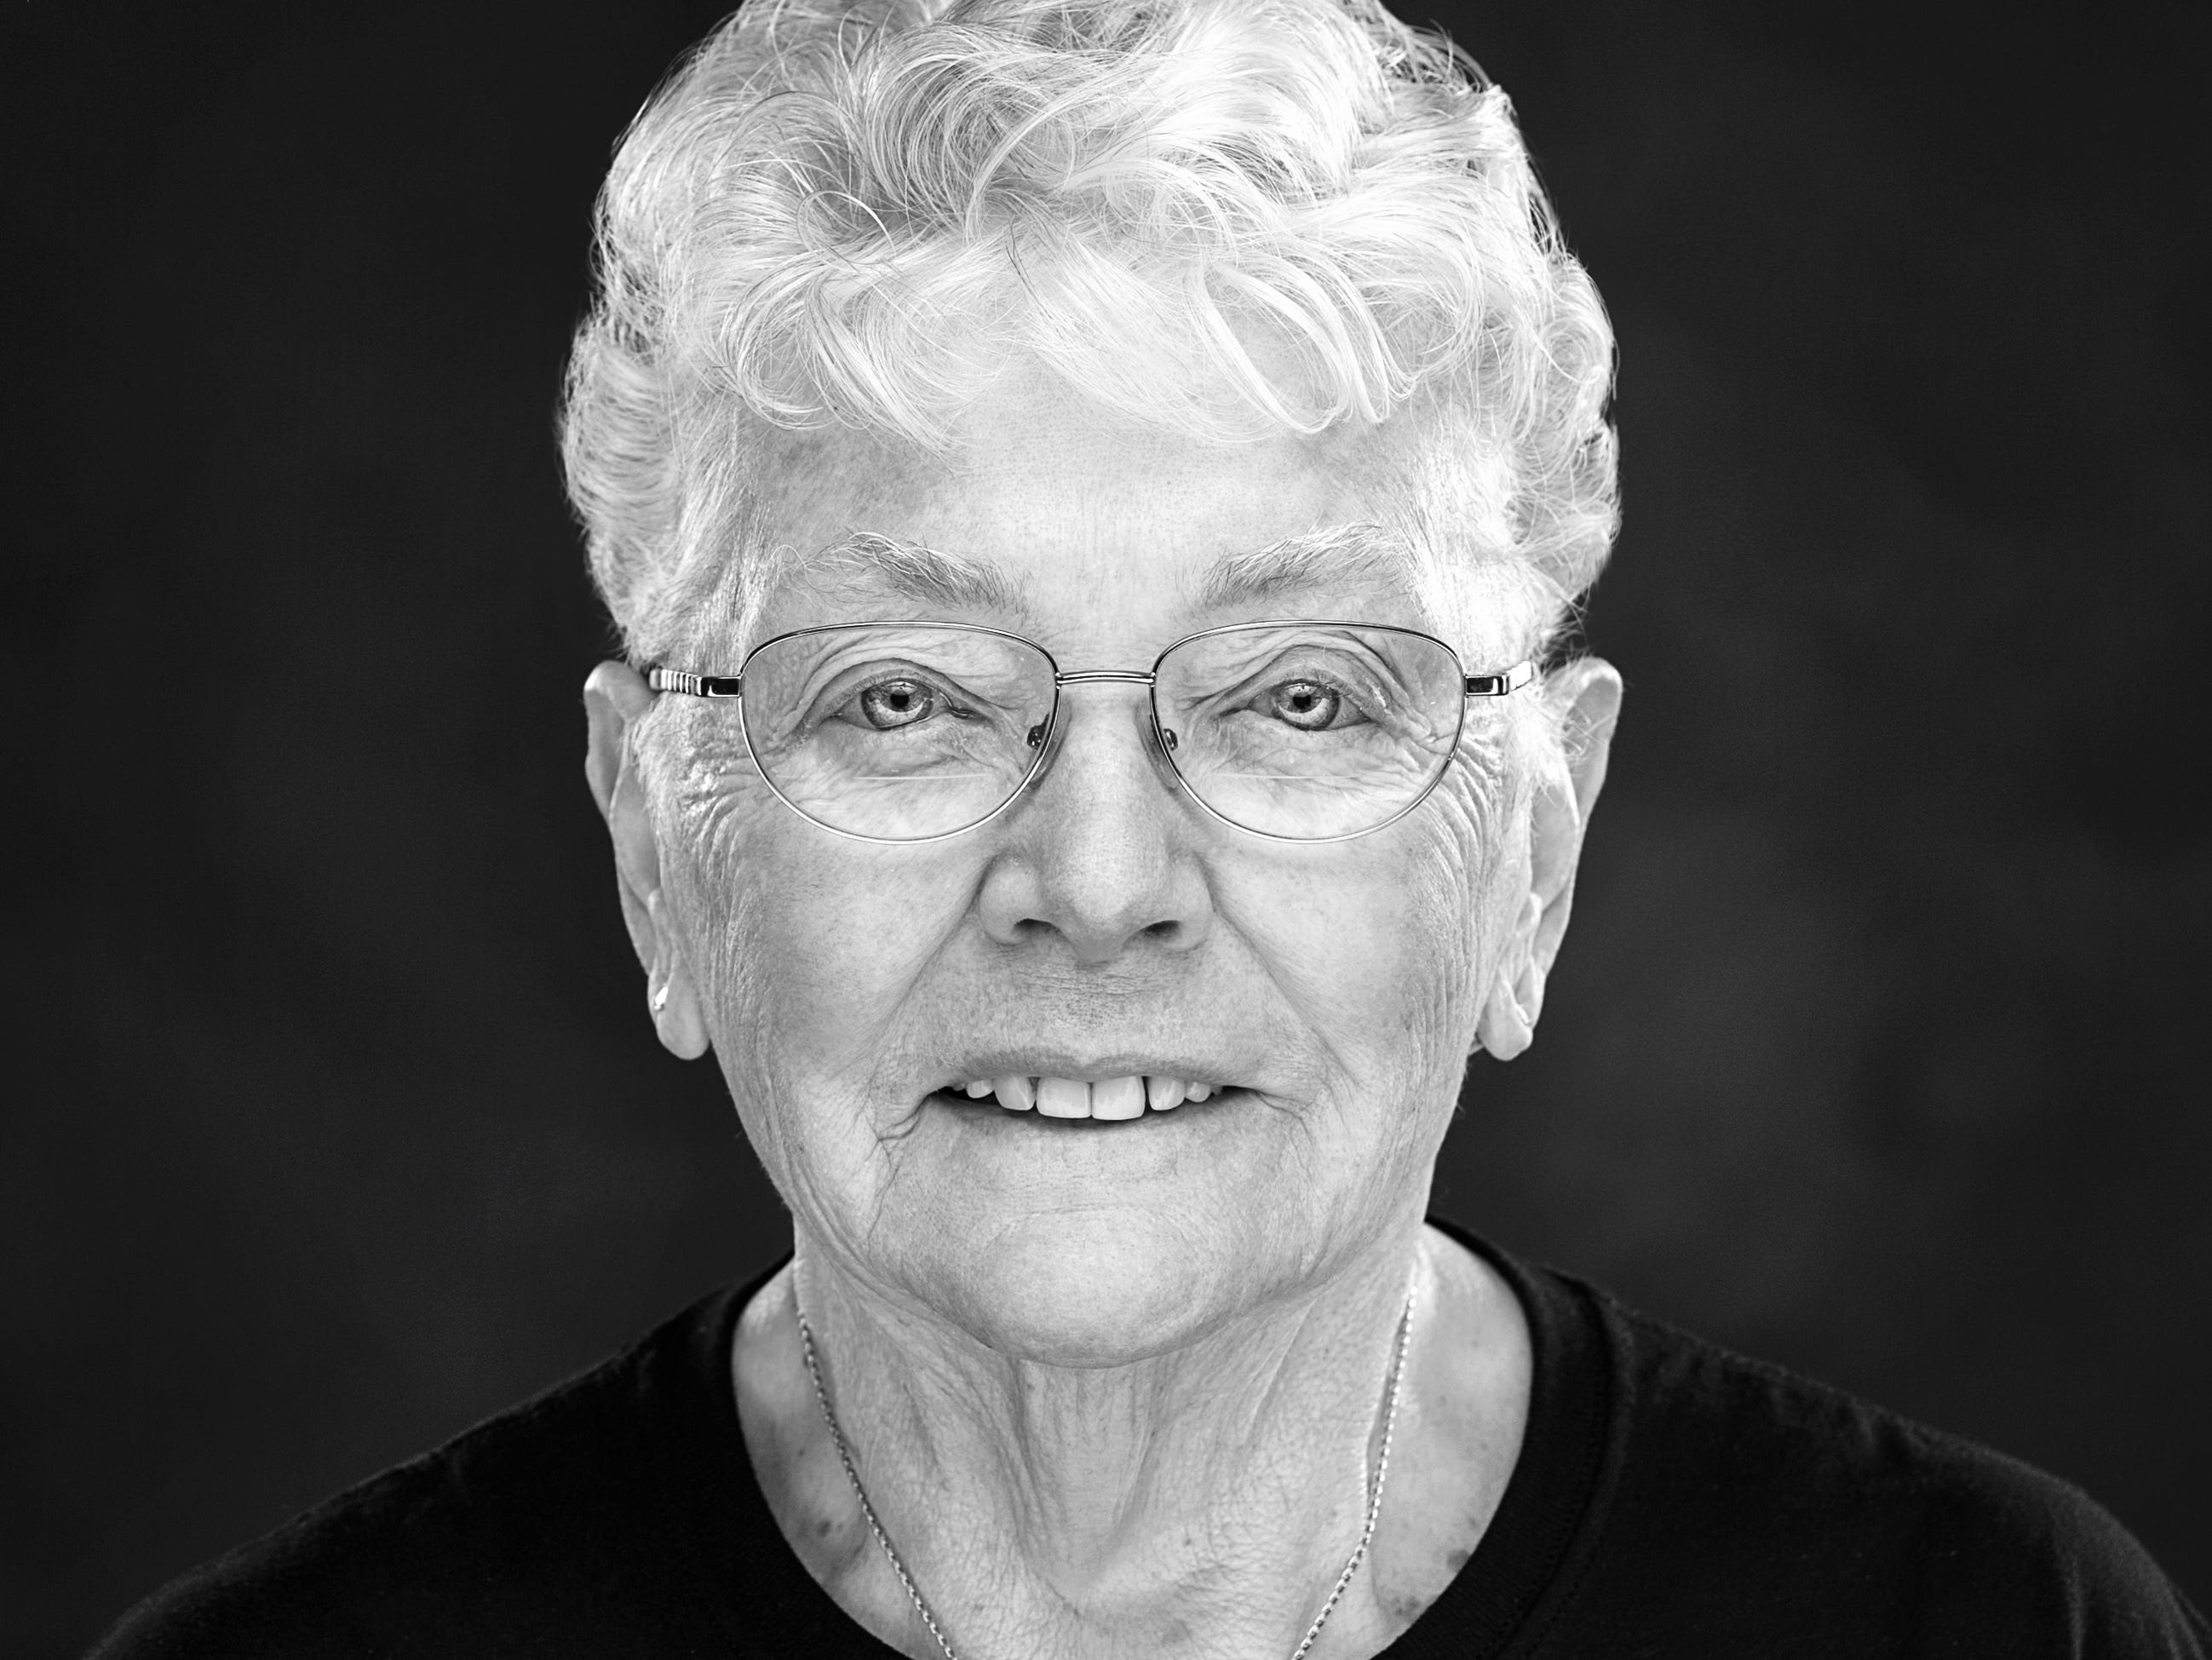 Ruth Ann Hafeman, 89: Hard work has been central to Ruth Ann's life. After her father died, she became a provider for her family, helping her mother with a seamstress business and later working at Employers Insurance in Wausau. Later, she married and embarked on an exciting and laborious adventure as a farmer's wife. In retirement, she swims and stays active in the community, including volunteeringat North Central Health Care and Bethesda.